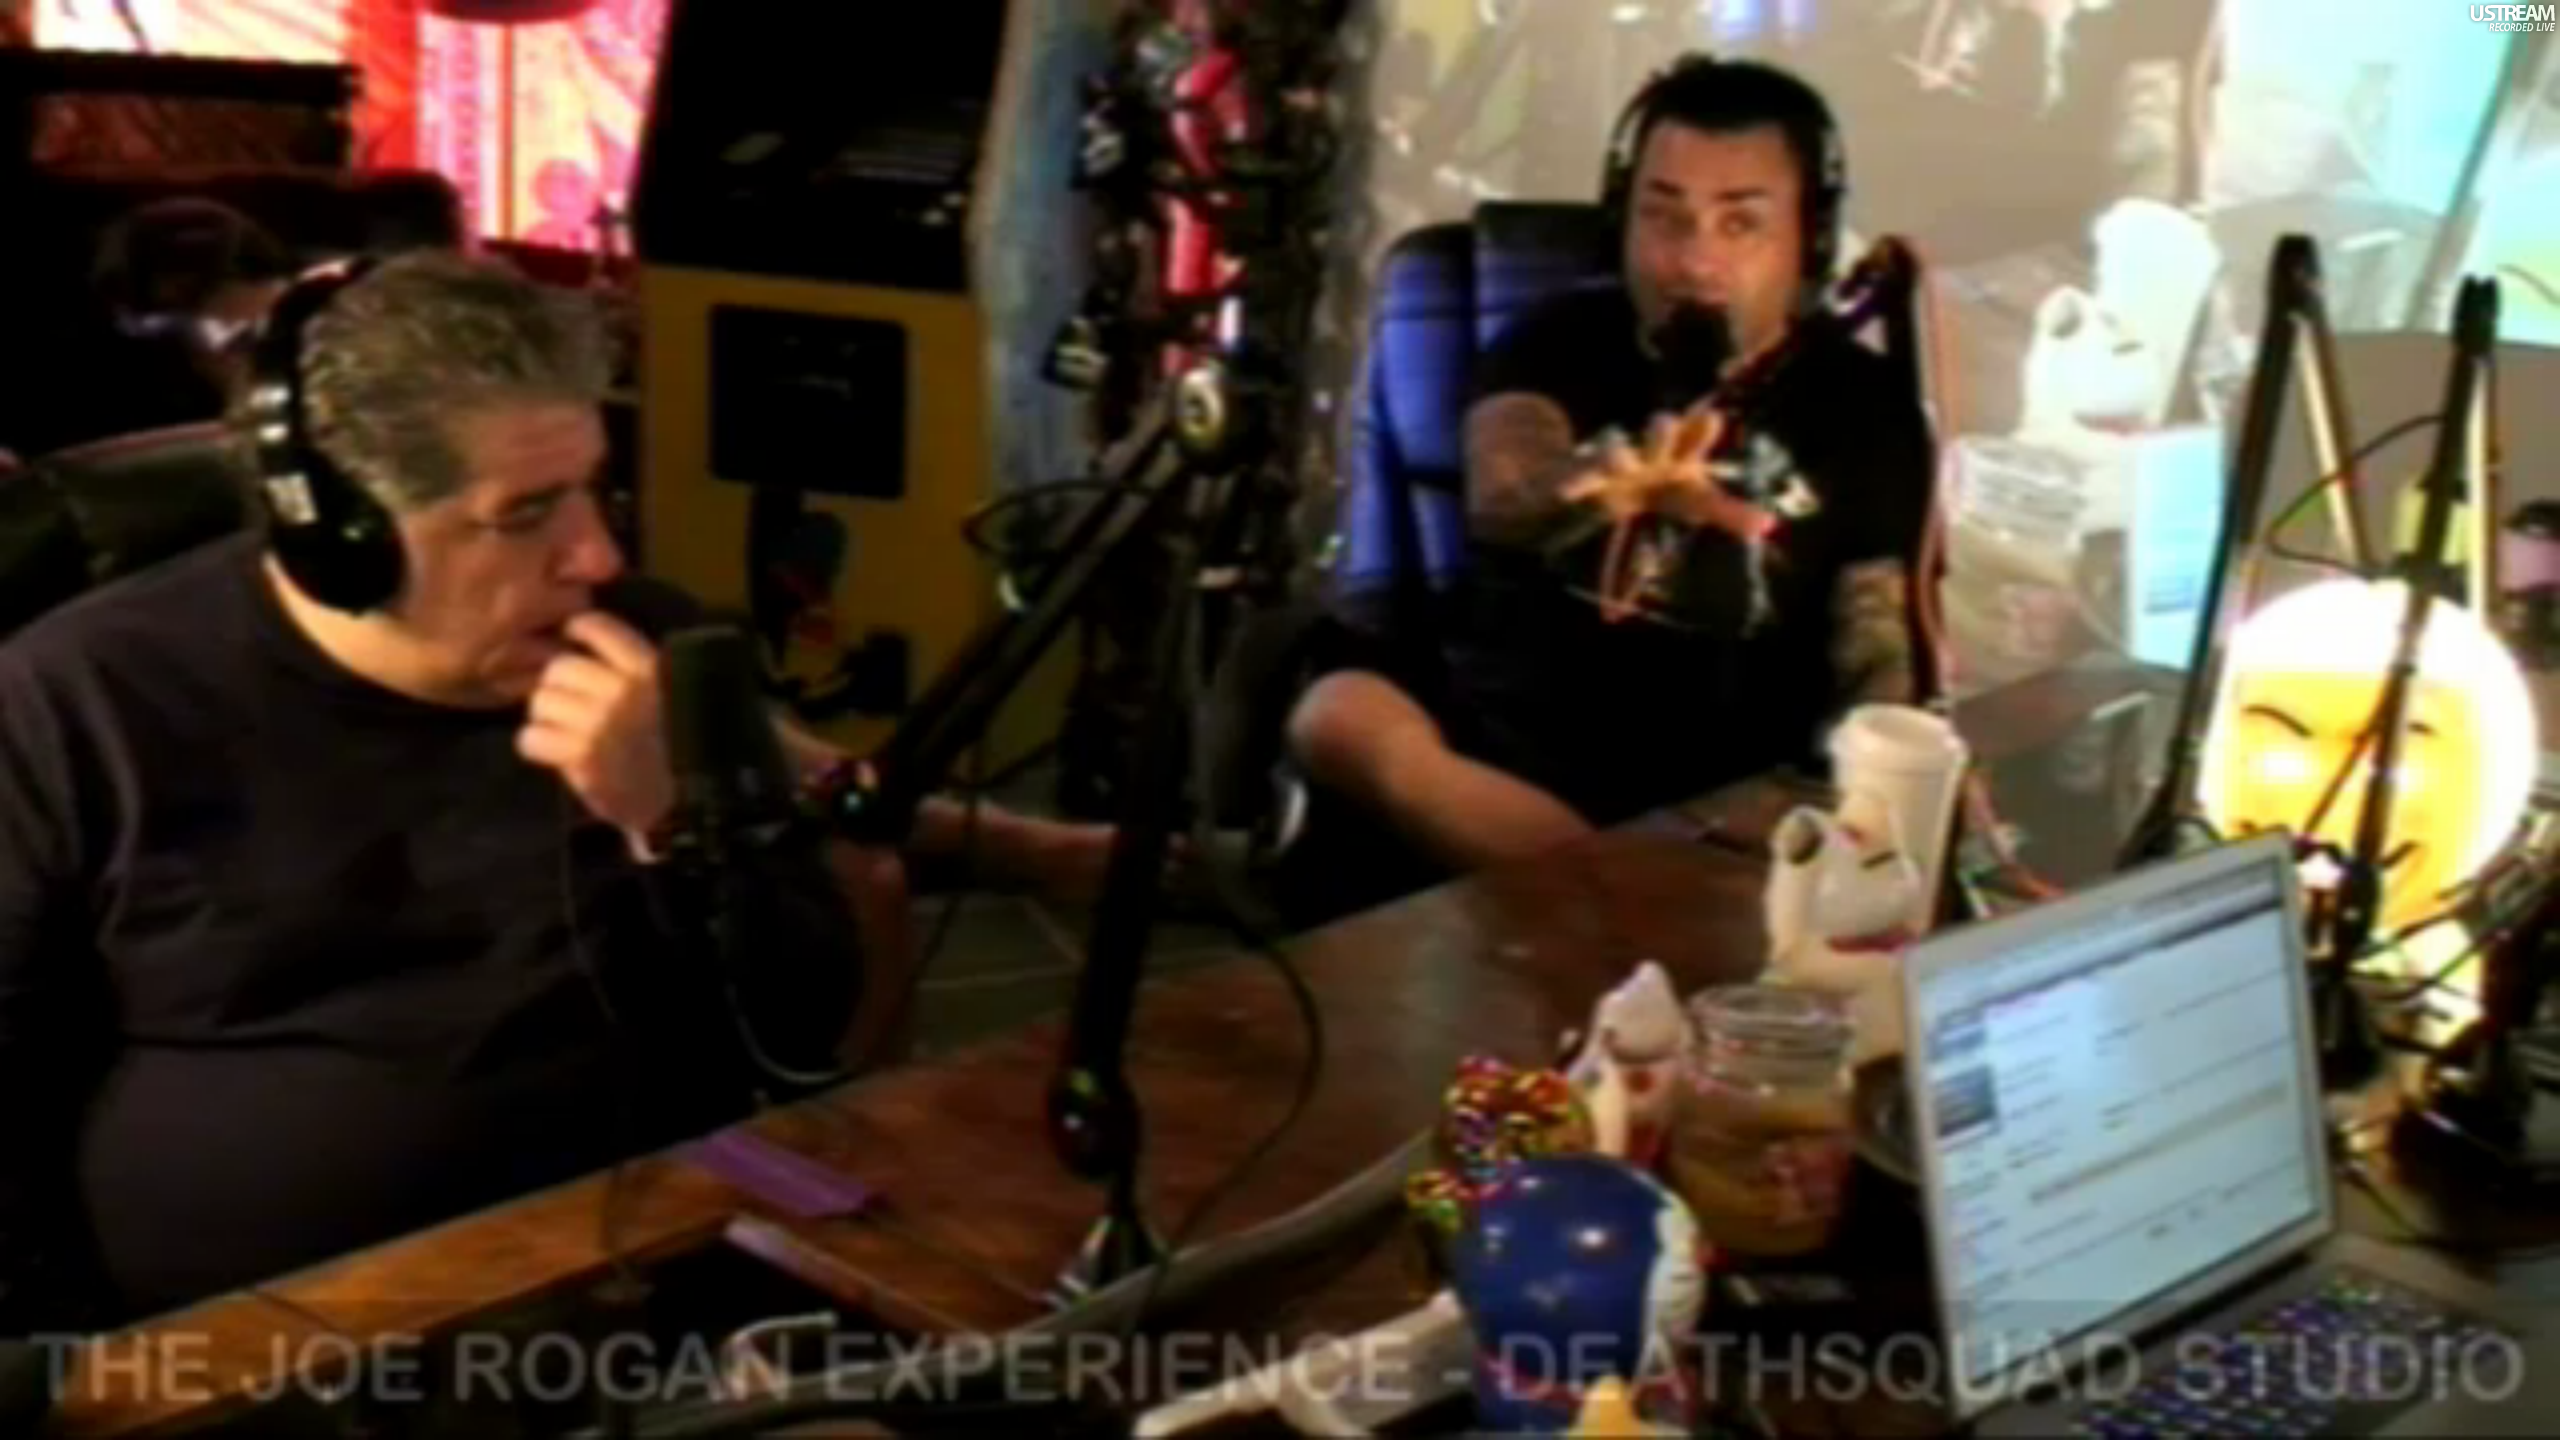 The Joe Rogan Experience PODCAST #180 - Joey Diaz, Eddie Bravo, Denny Prokopos, Brian Redban